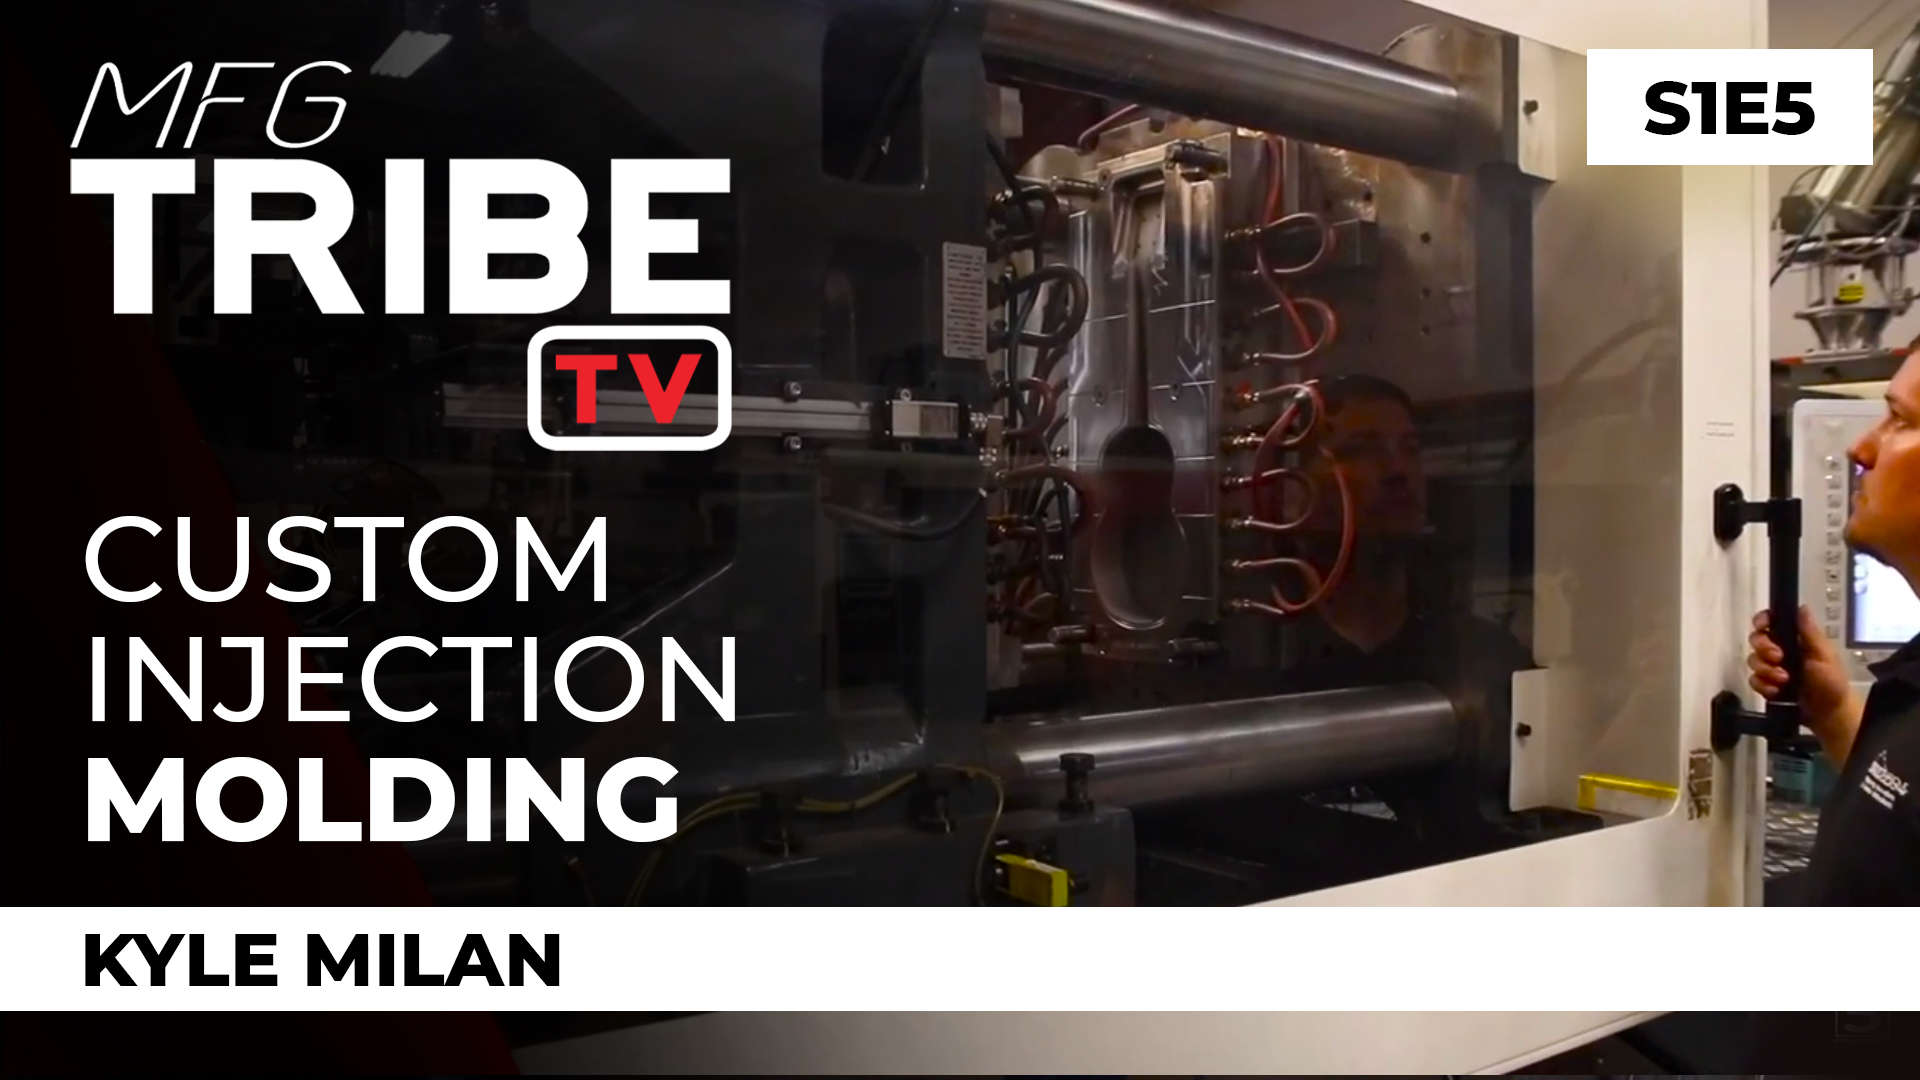 injection molding mfg tribe tv